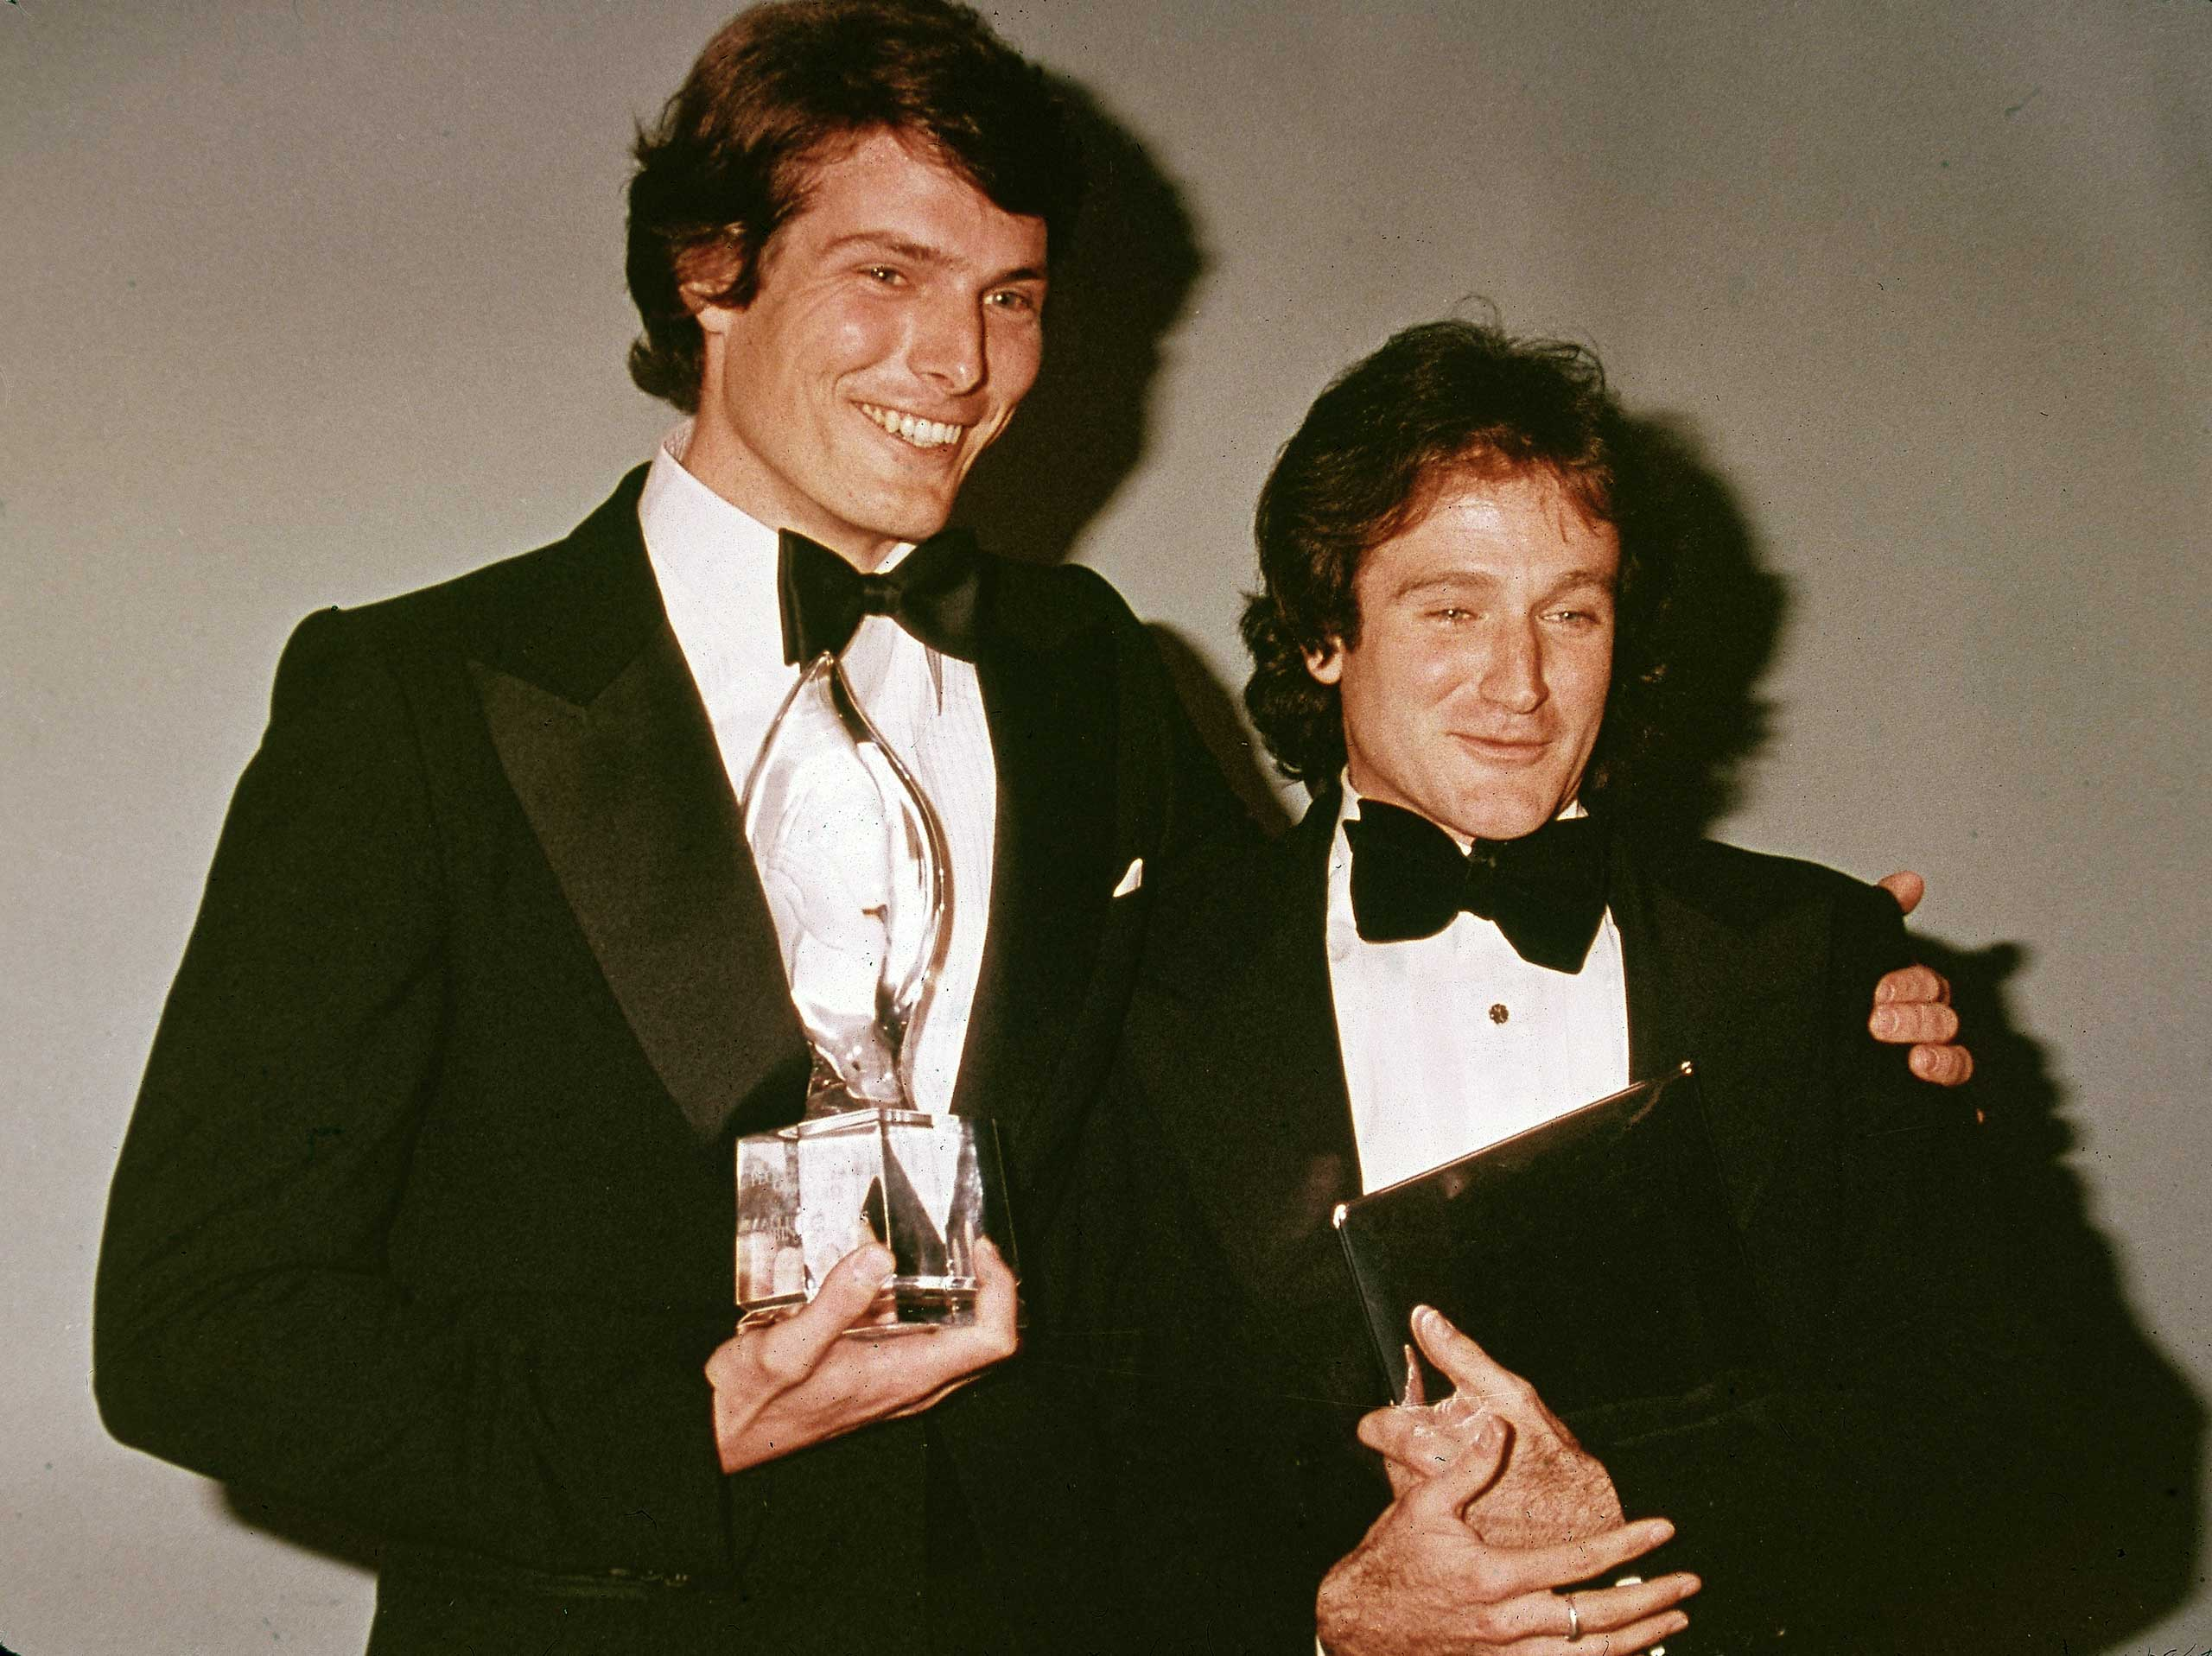 The late, great actors Christopher Reeve and Robin WIlliams met as students at Juilliard.